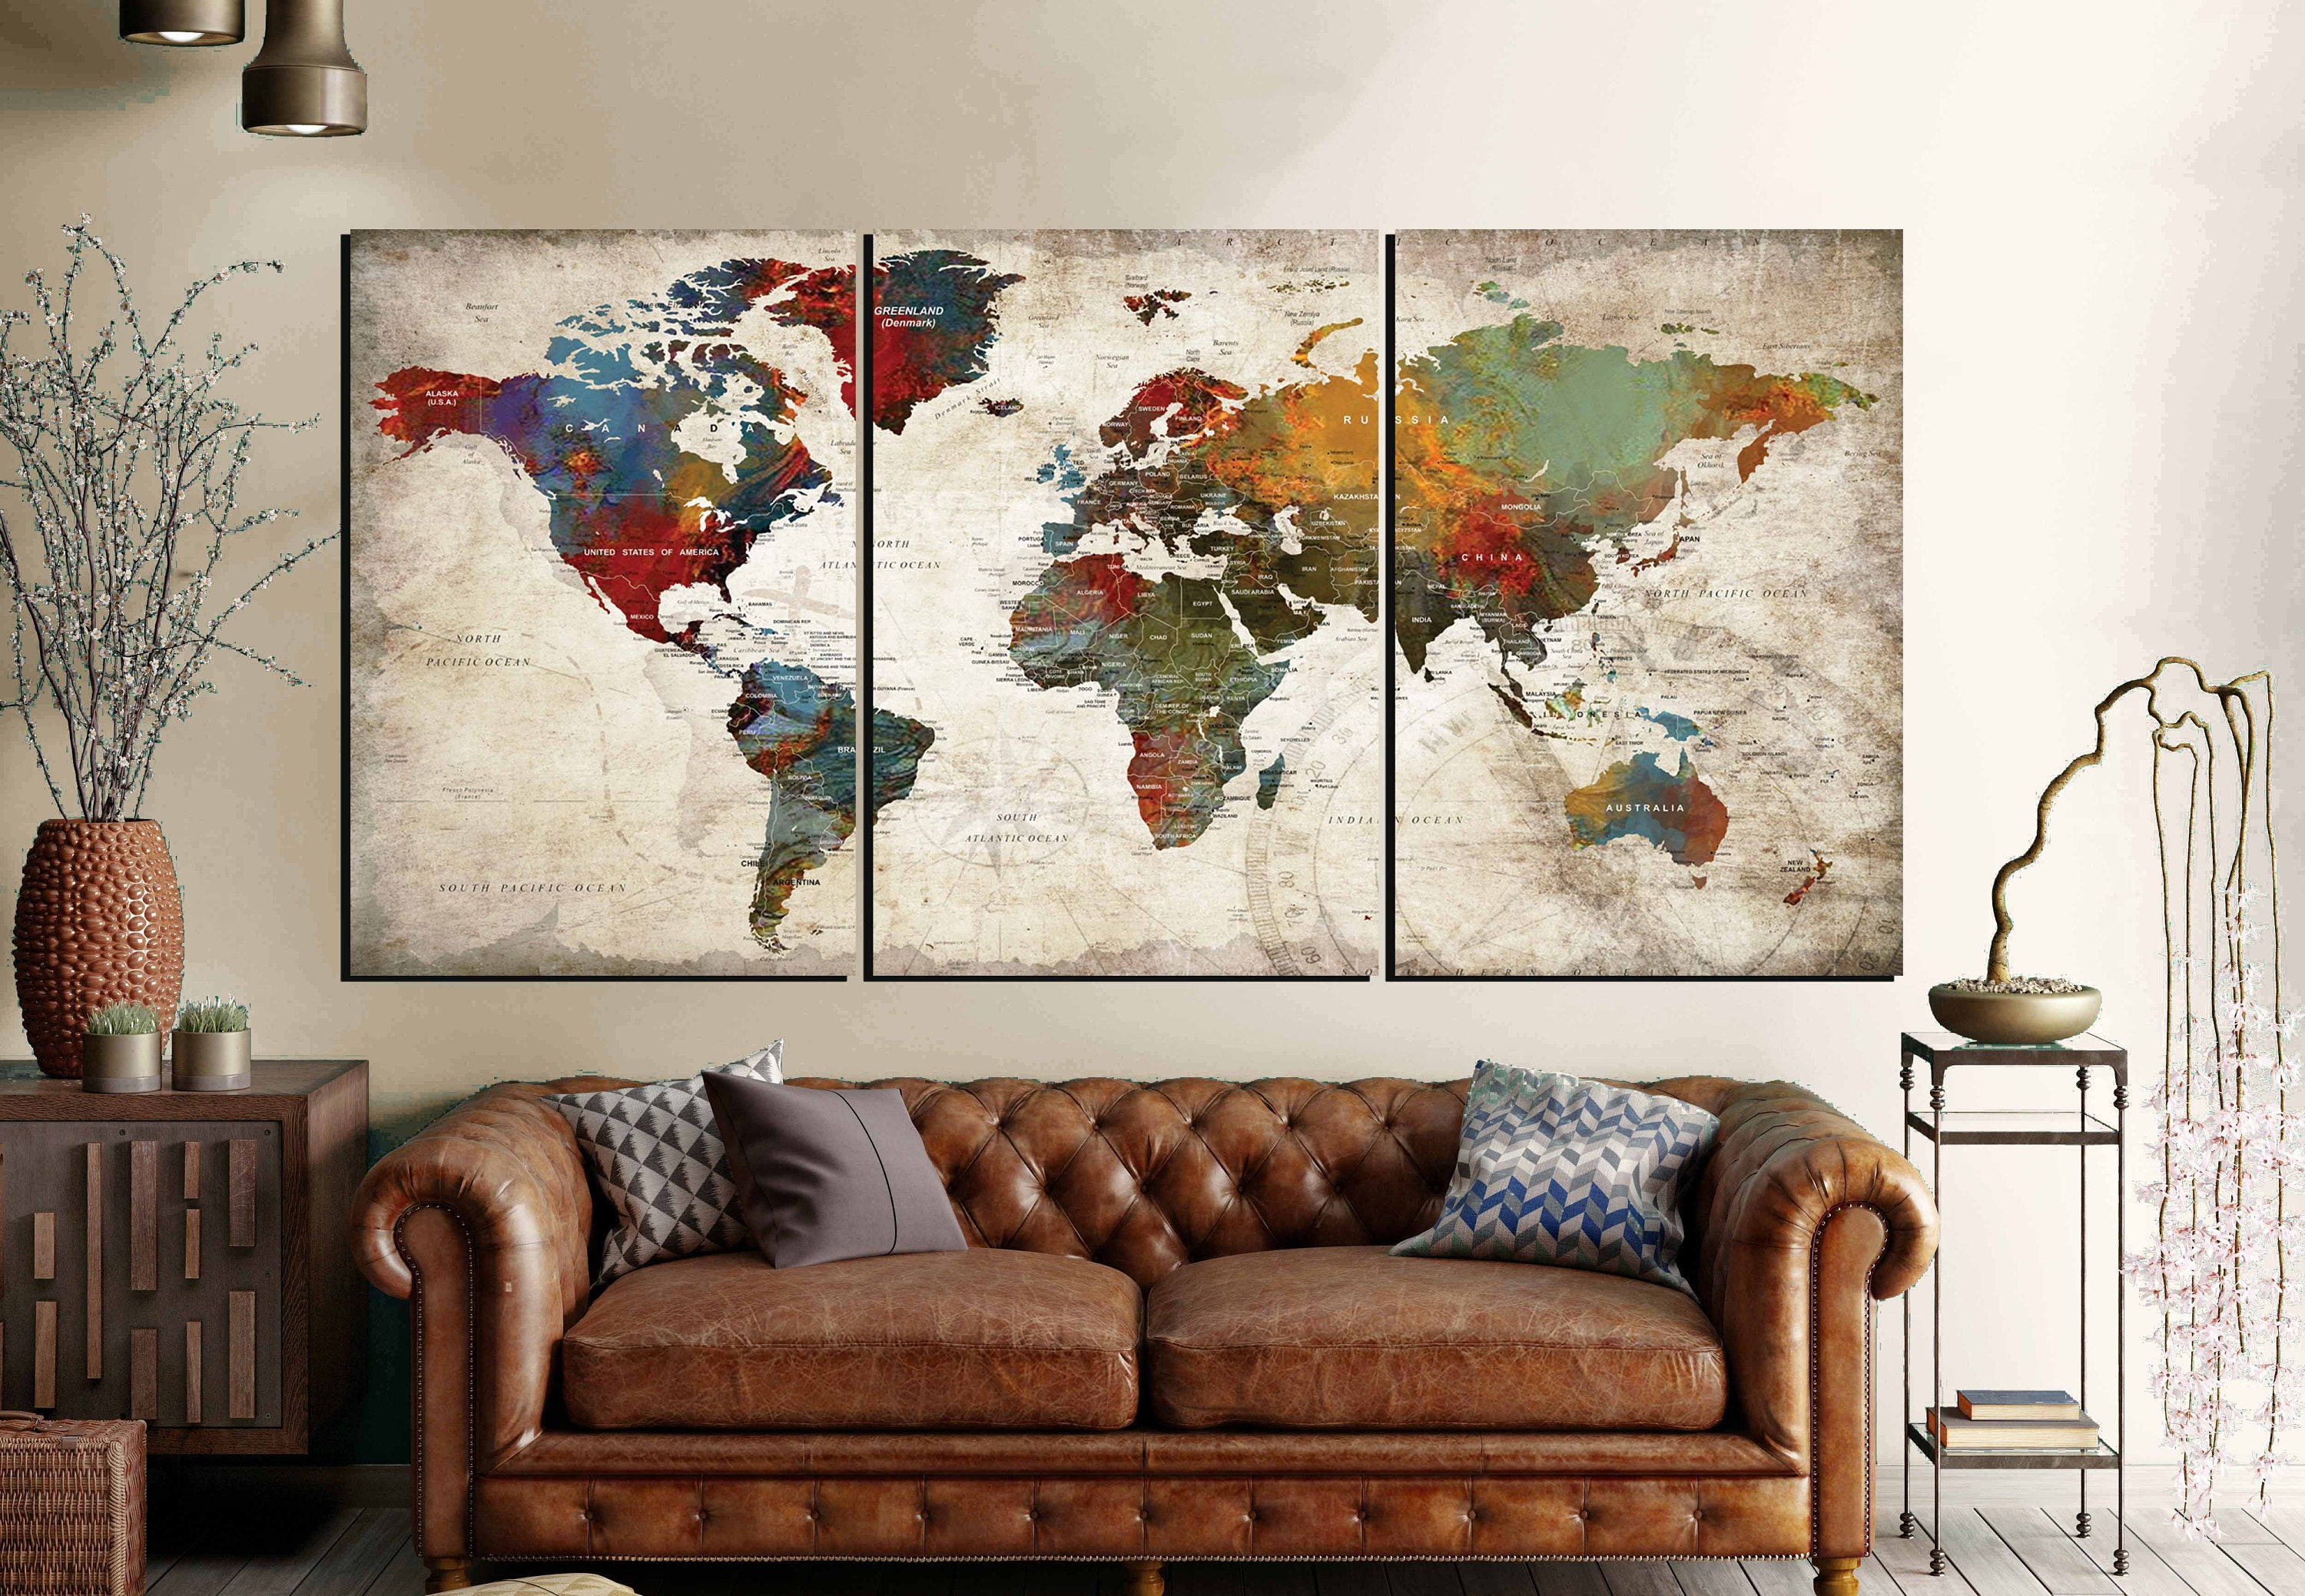 World map wall art 3 panel canvas artworld map large canvas panels world map wall art 3 panel canvas artworld map large canvas panelsworld map artworld map canvasworld map abstract artworld map push pin gumiabroncs Gallery